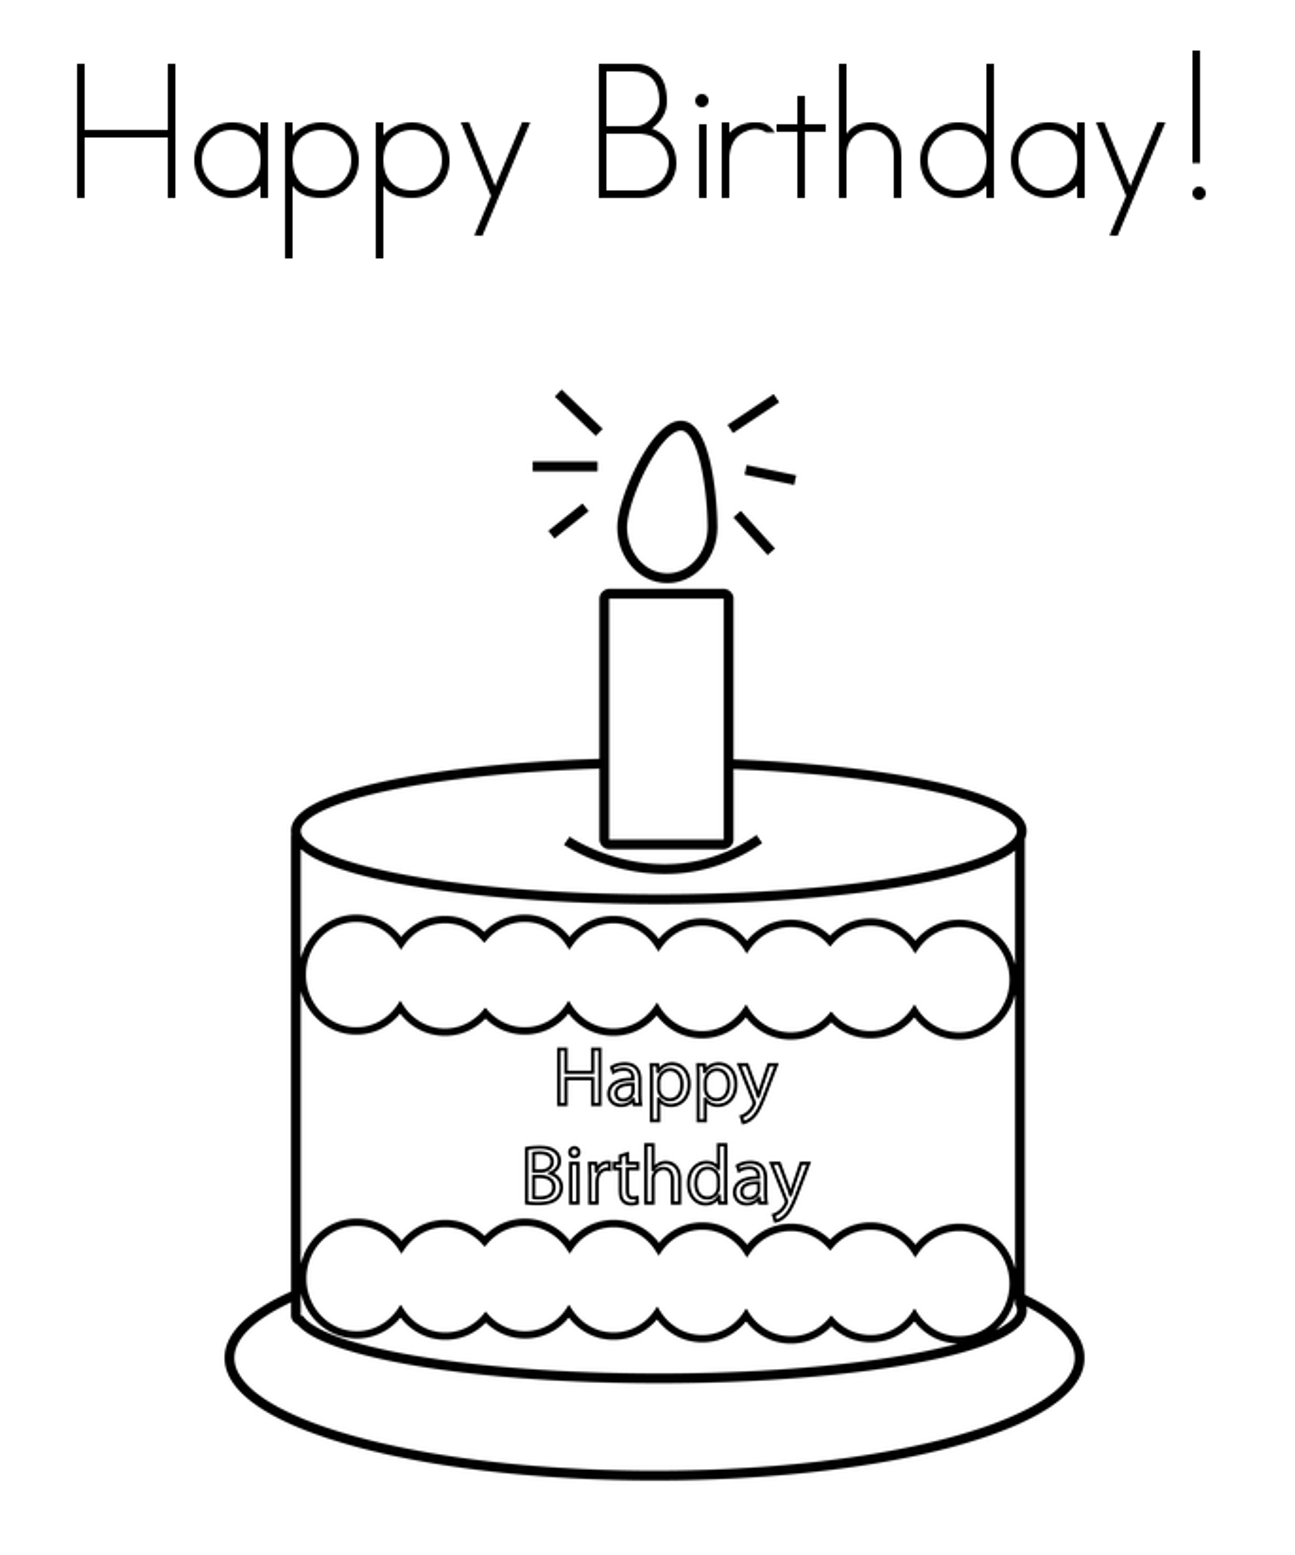 Coloring pages birthday cake - Happy Birthday Cake Coloring Page